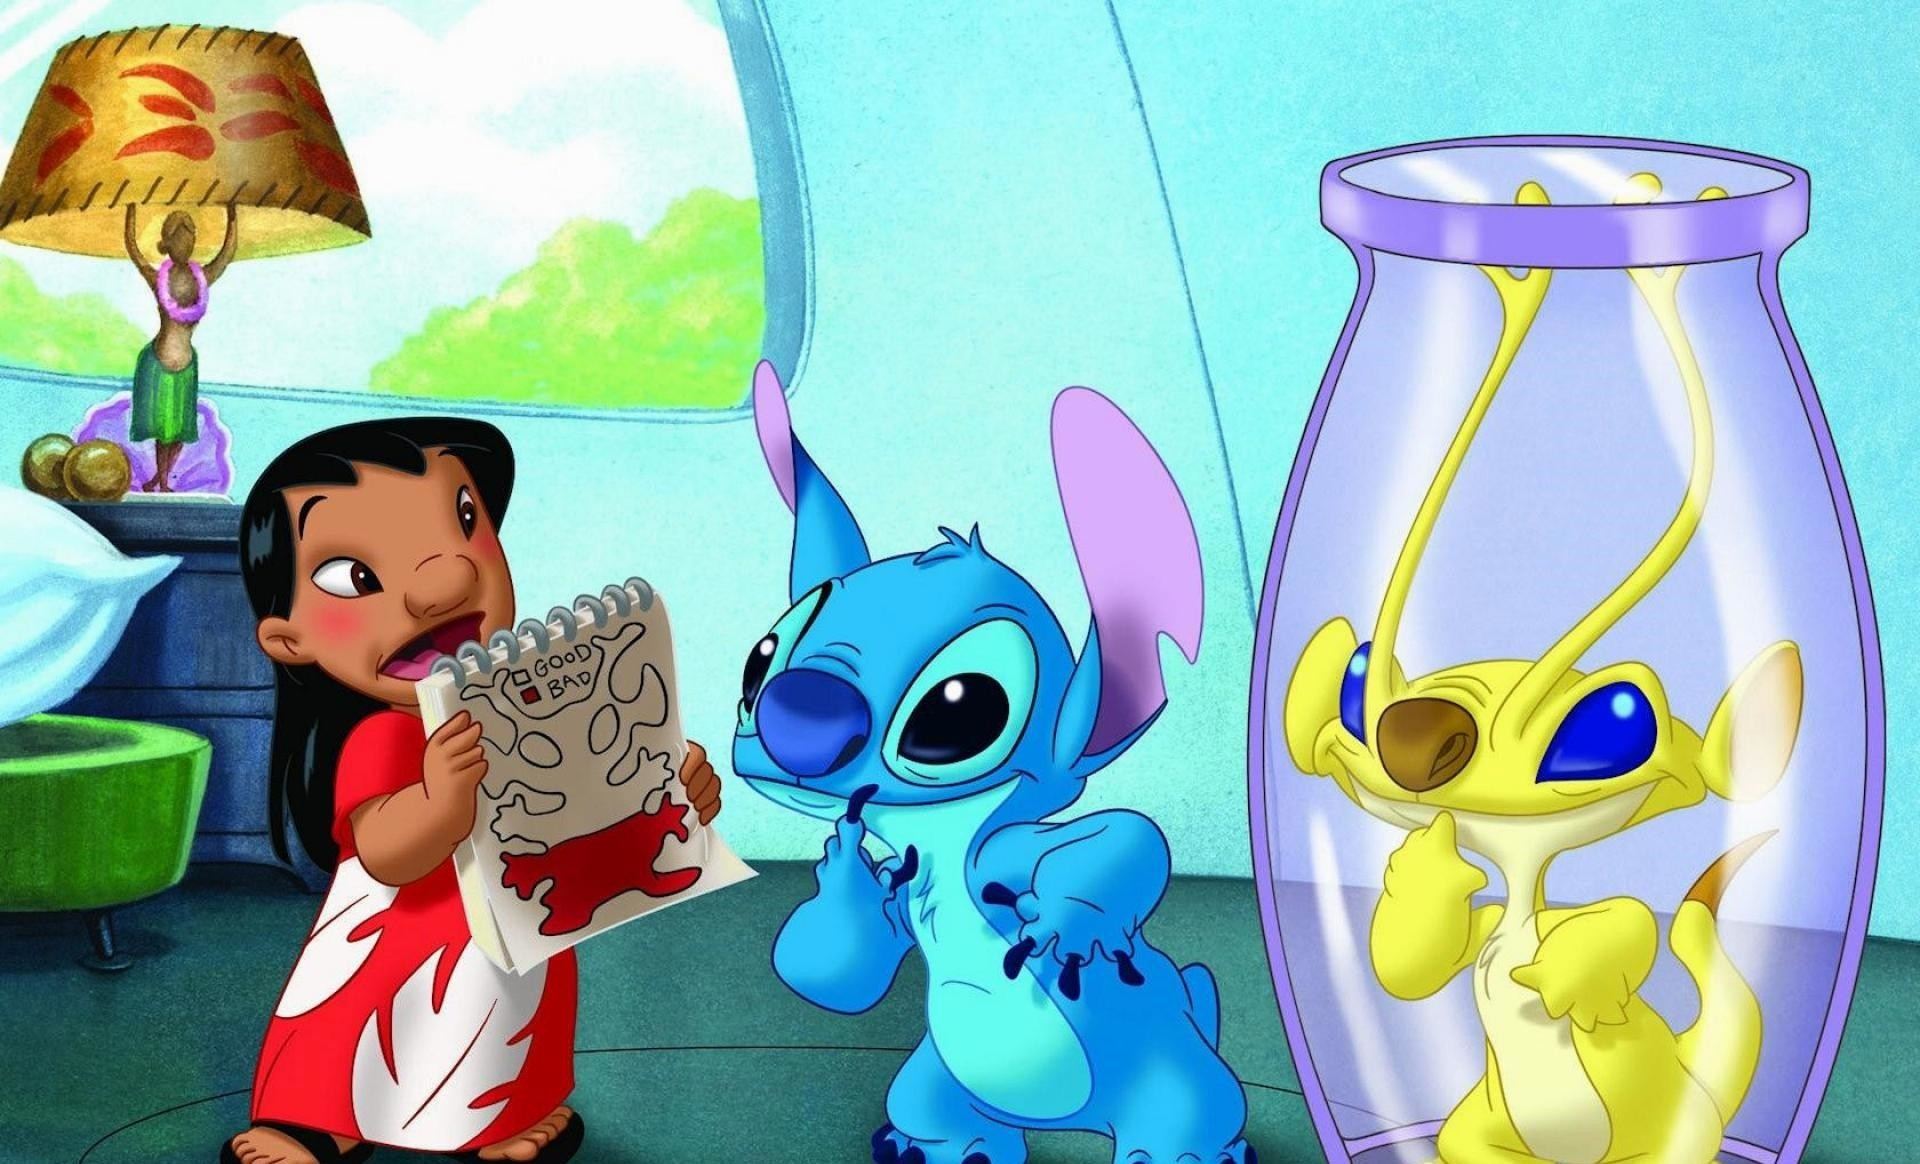 Lilo-and-stitch-wallpapers-HD